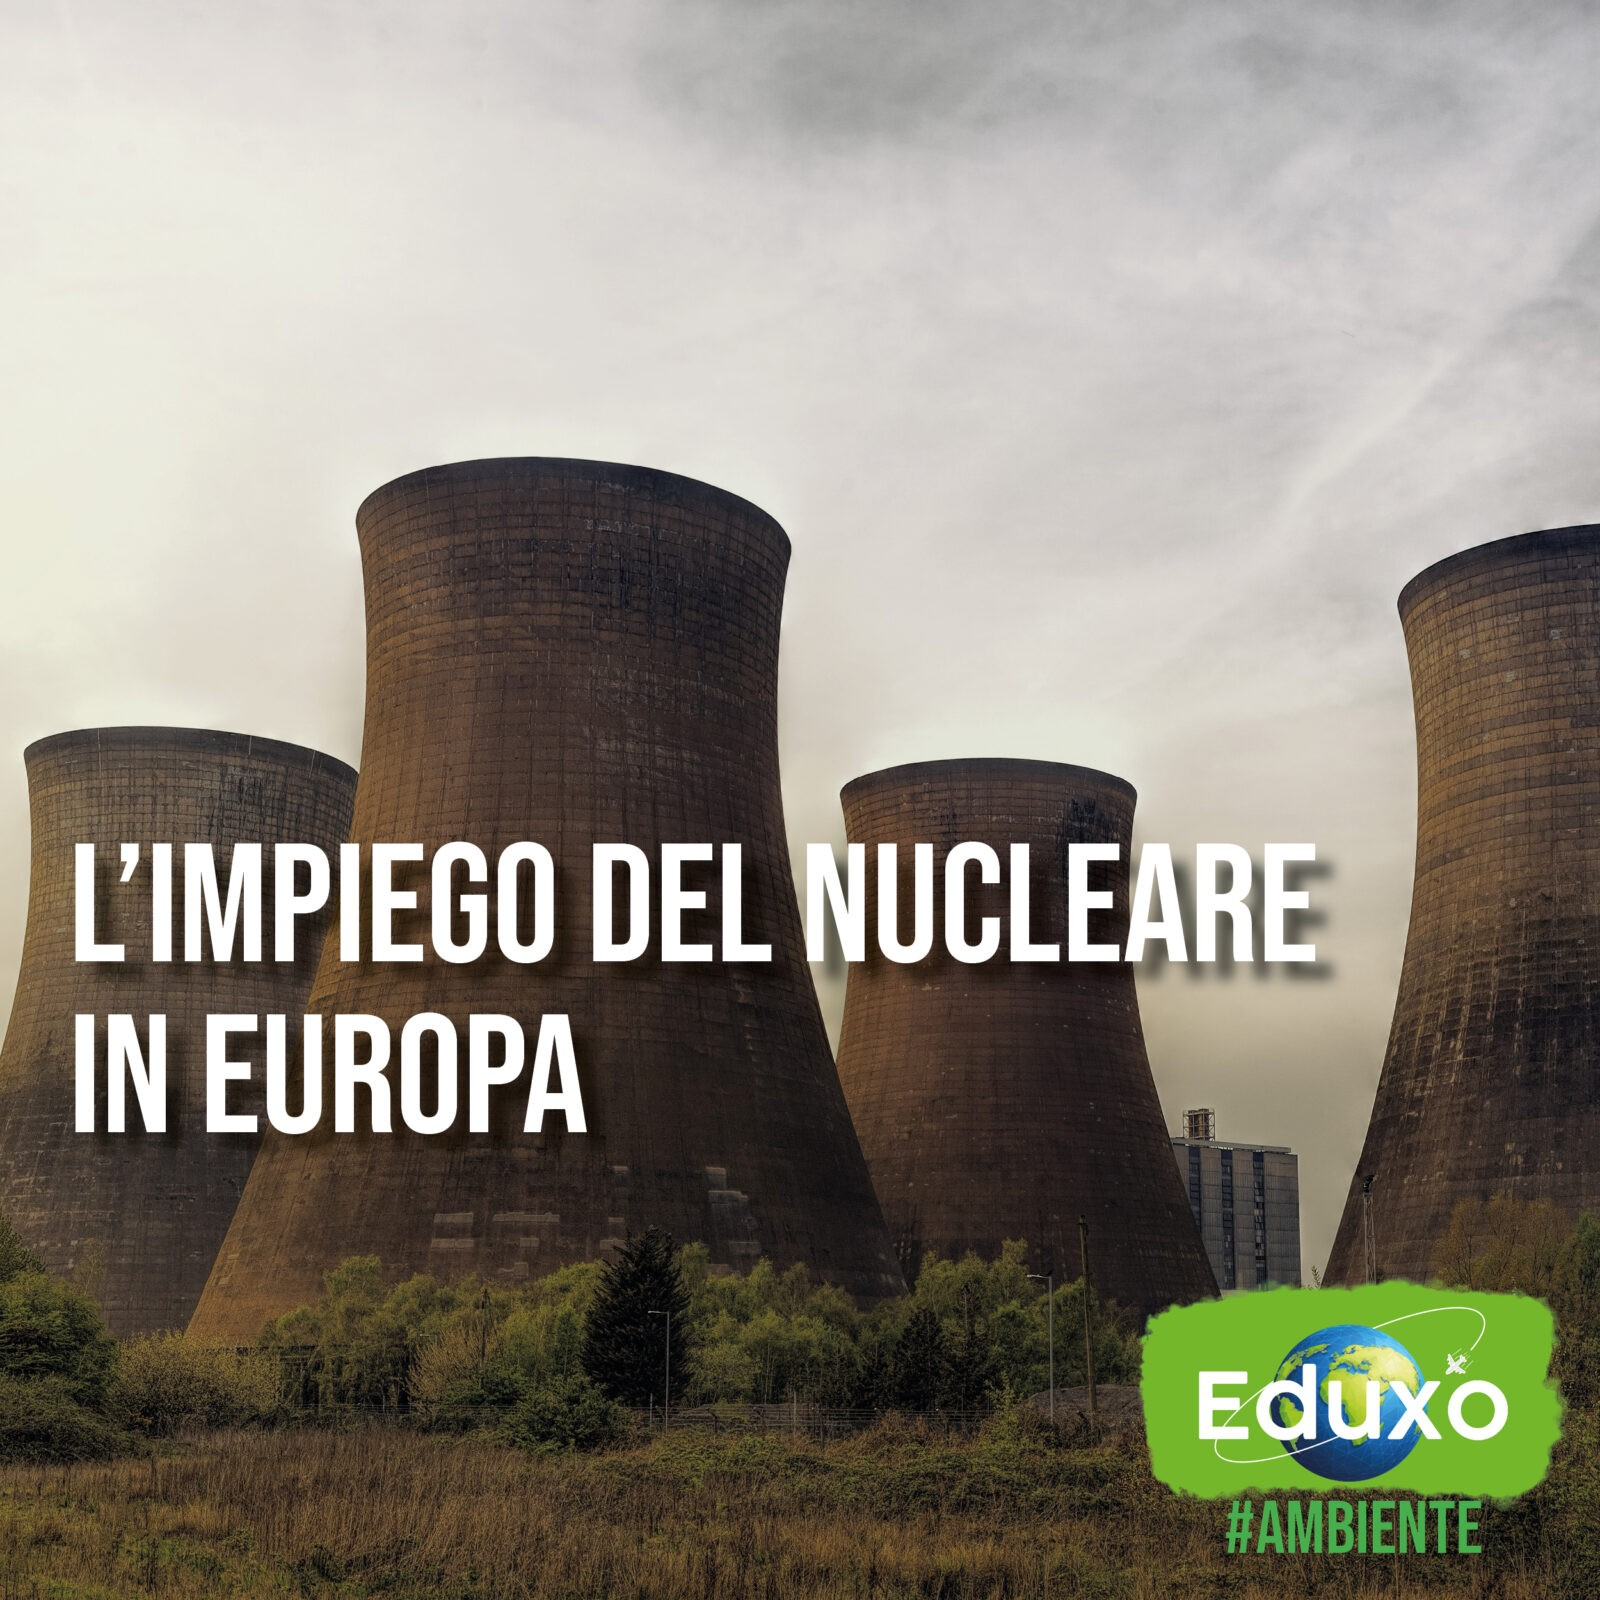 You are currently viewing L'impiego del nucleare in Europa